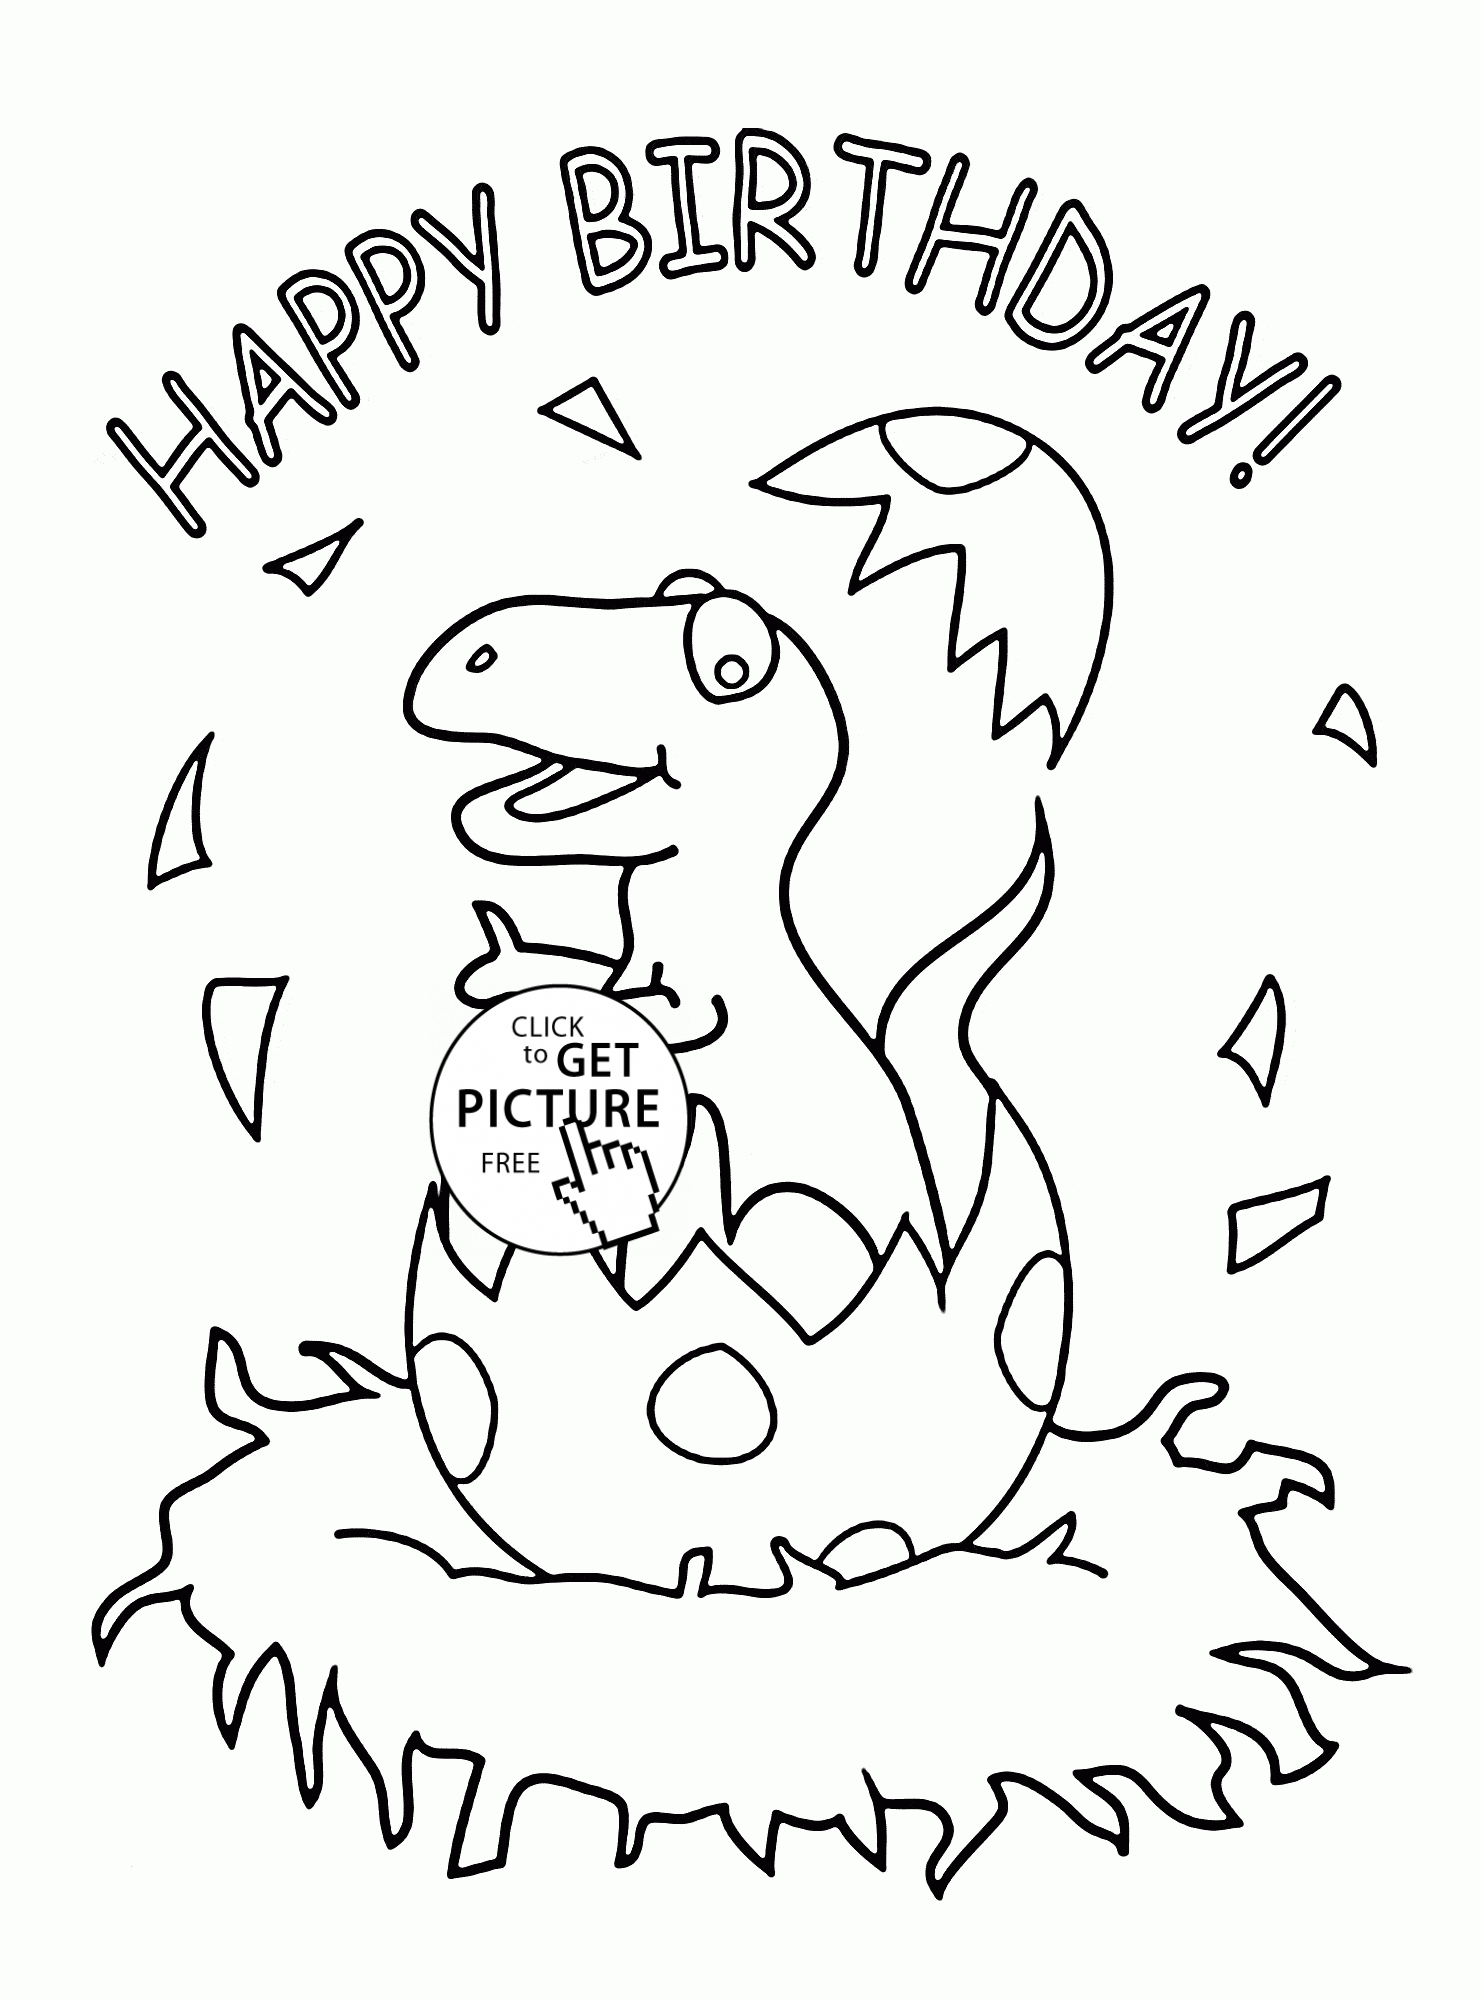 personalized happy birthday coloring pages ; personalized-happy-birthday-coloring-pages-19-c-happy-birthday-coloring-pages-for-parties-and-celebrating-happy-year-olds